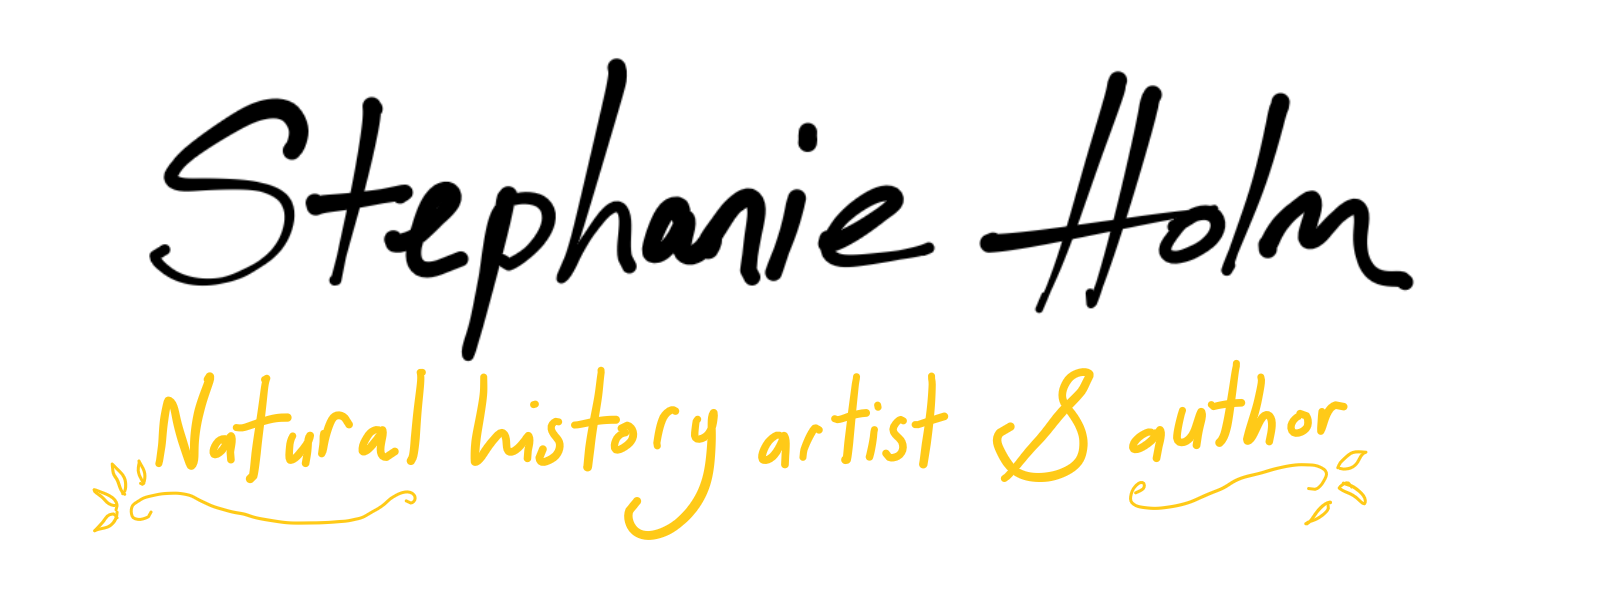 Stephanie Holm Natural history artist and author